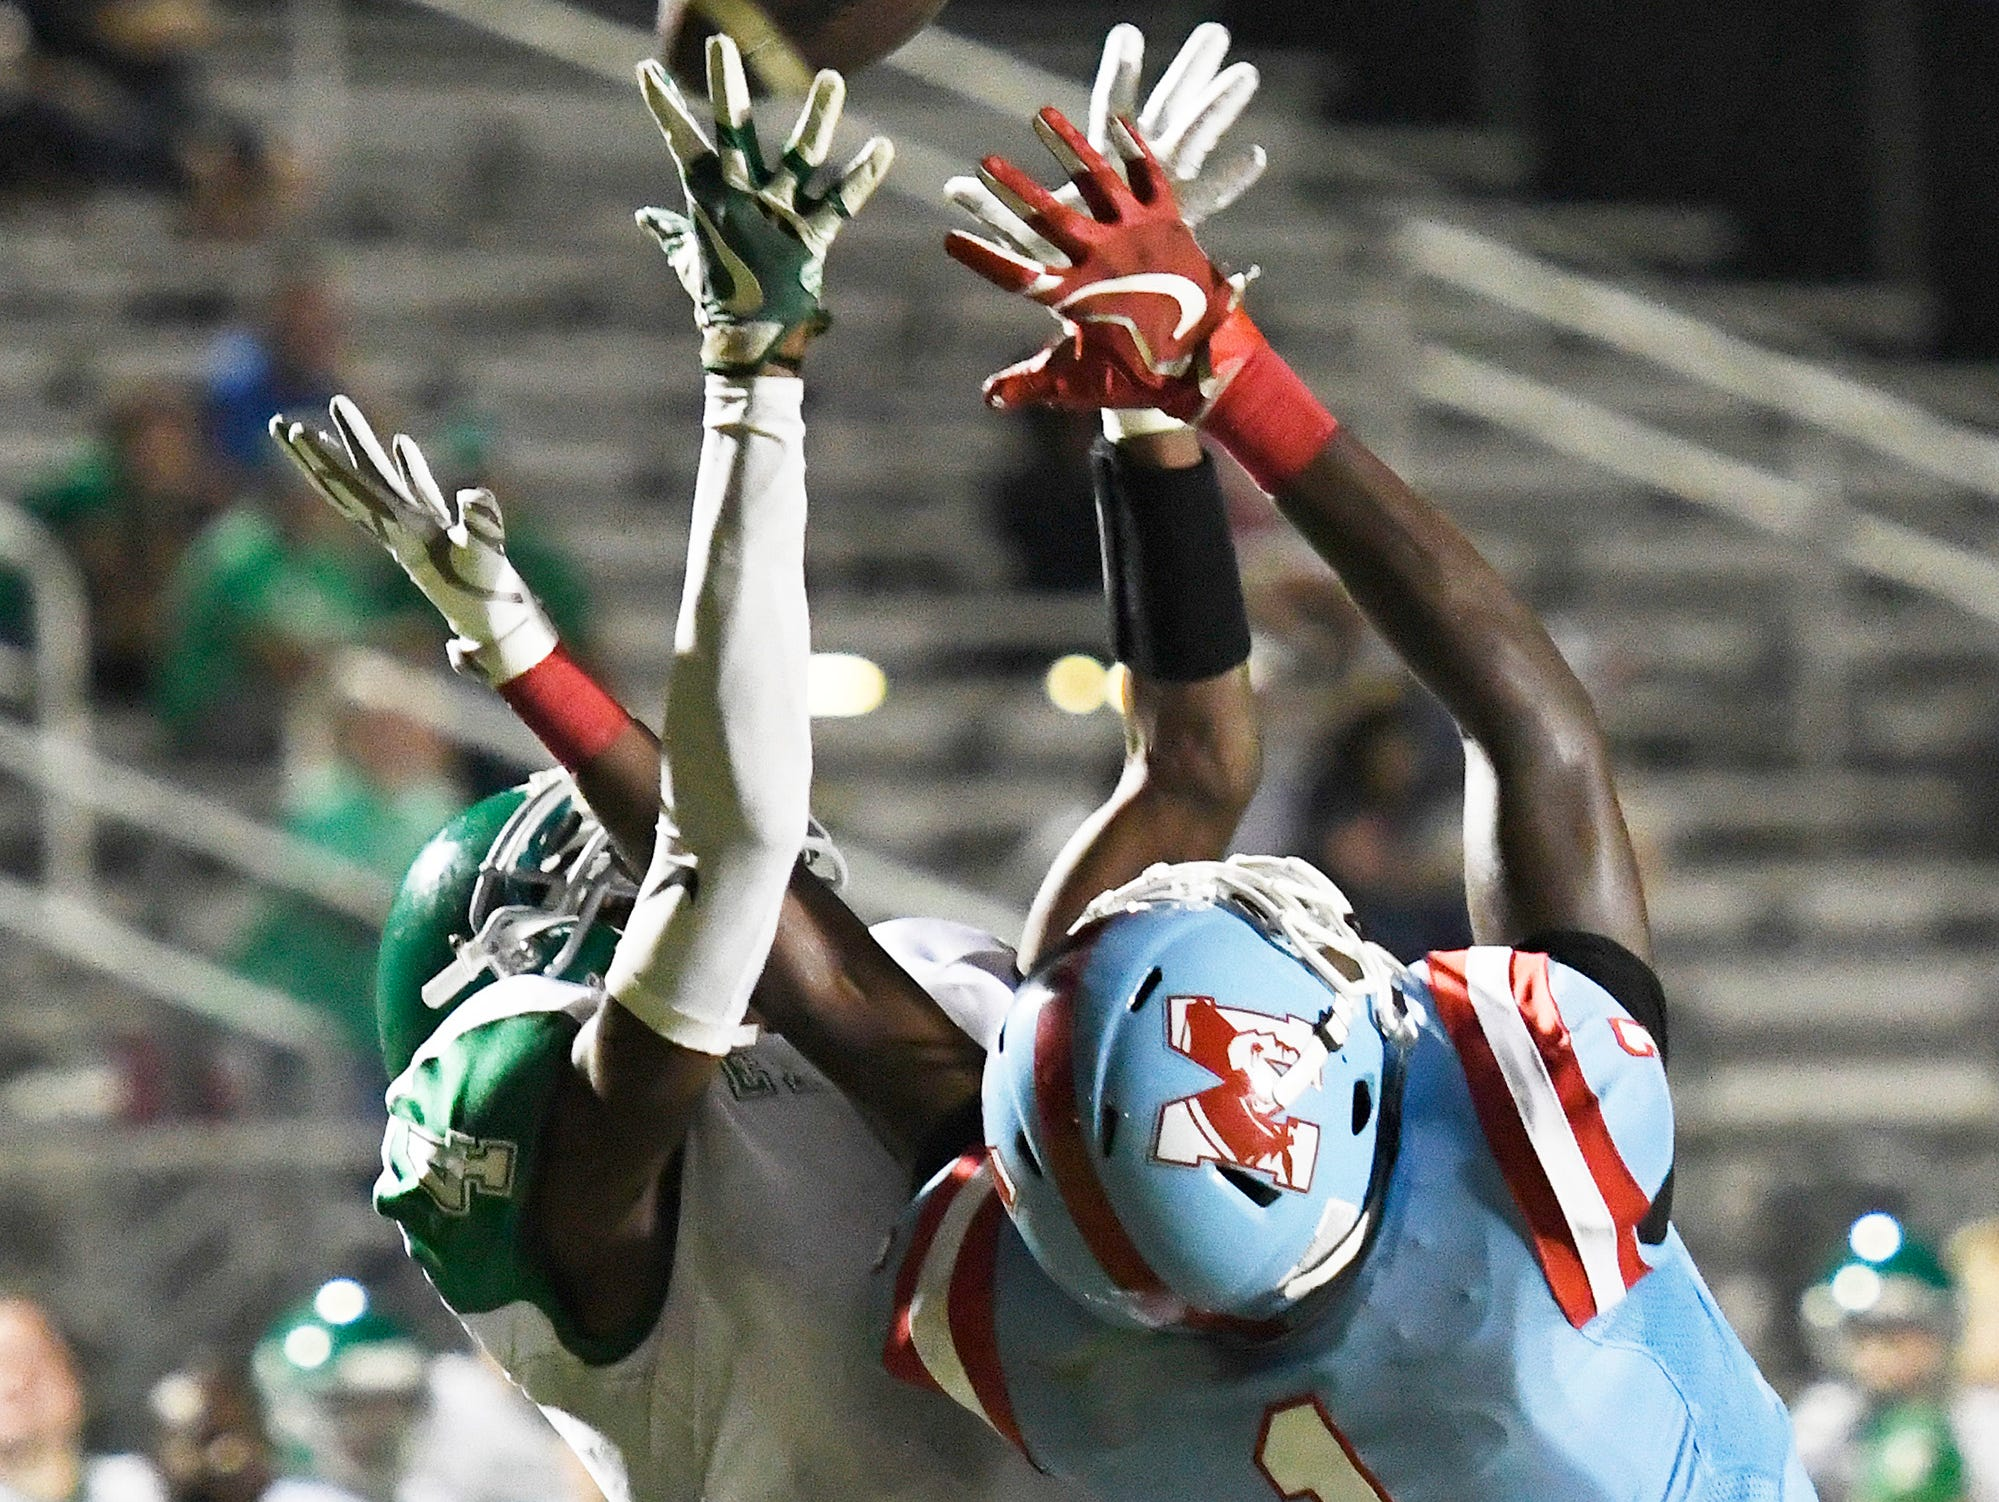 Easley's Jalen Young (4) intercepts a pass intended for JL Mann's Deonte Sloan (1).